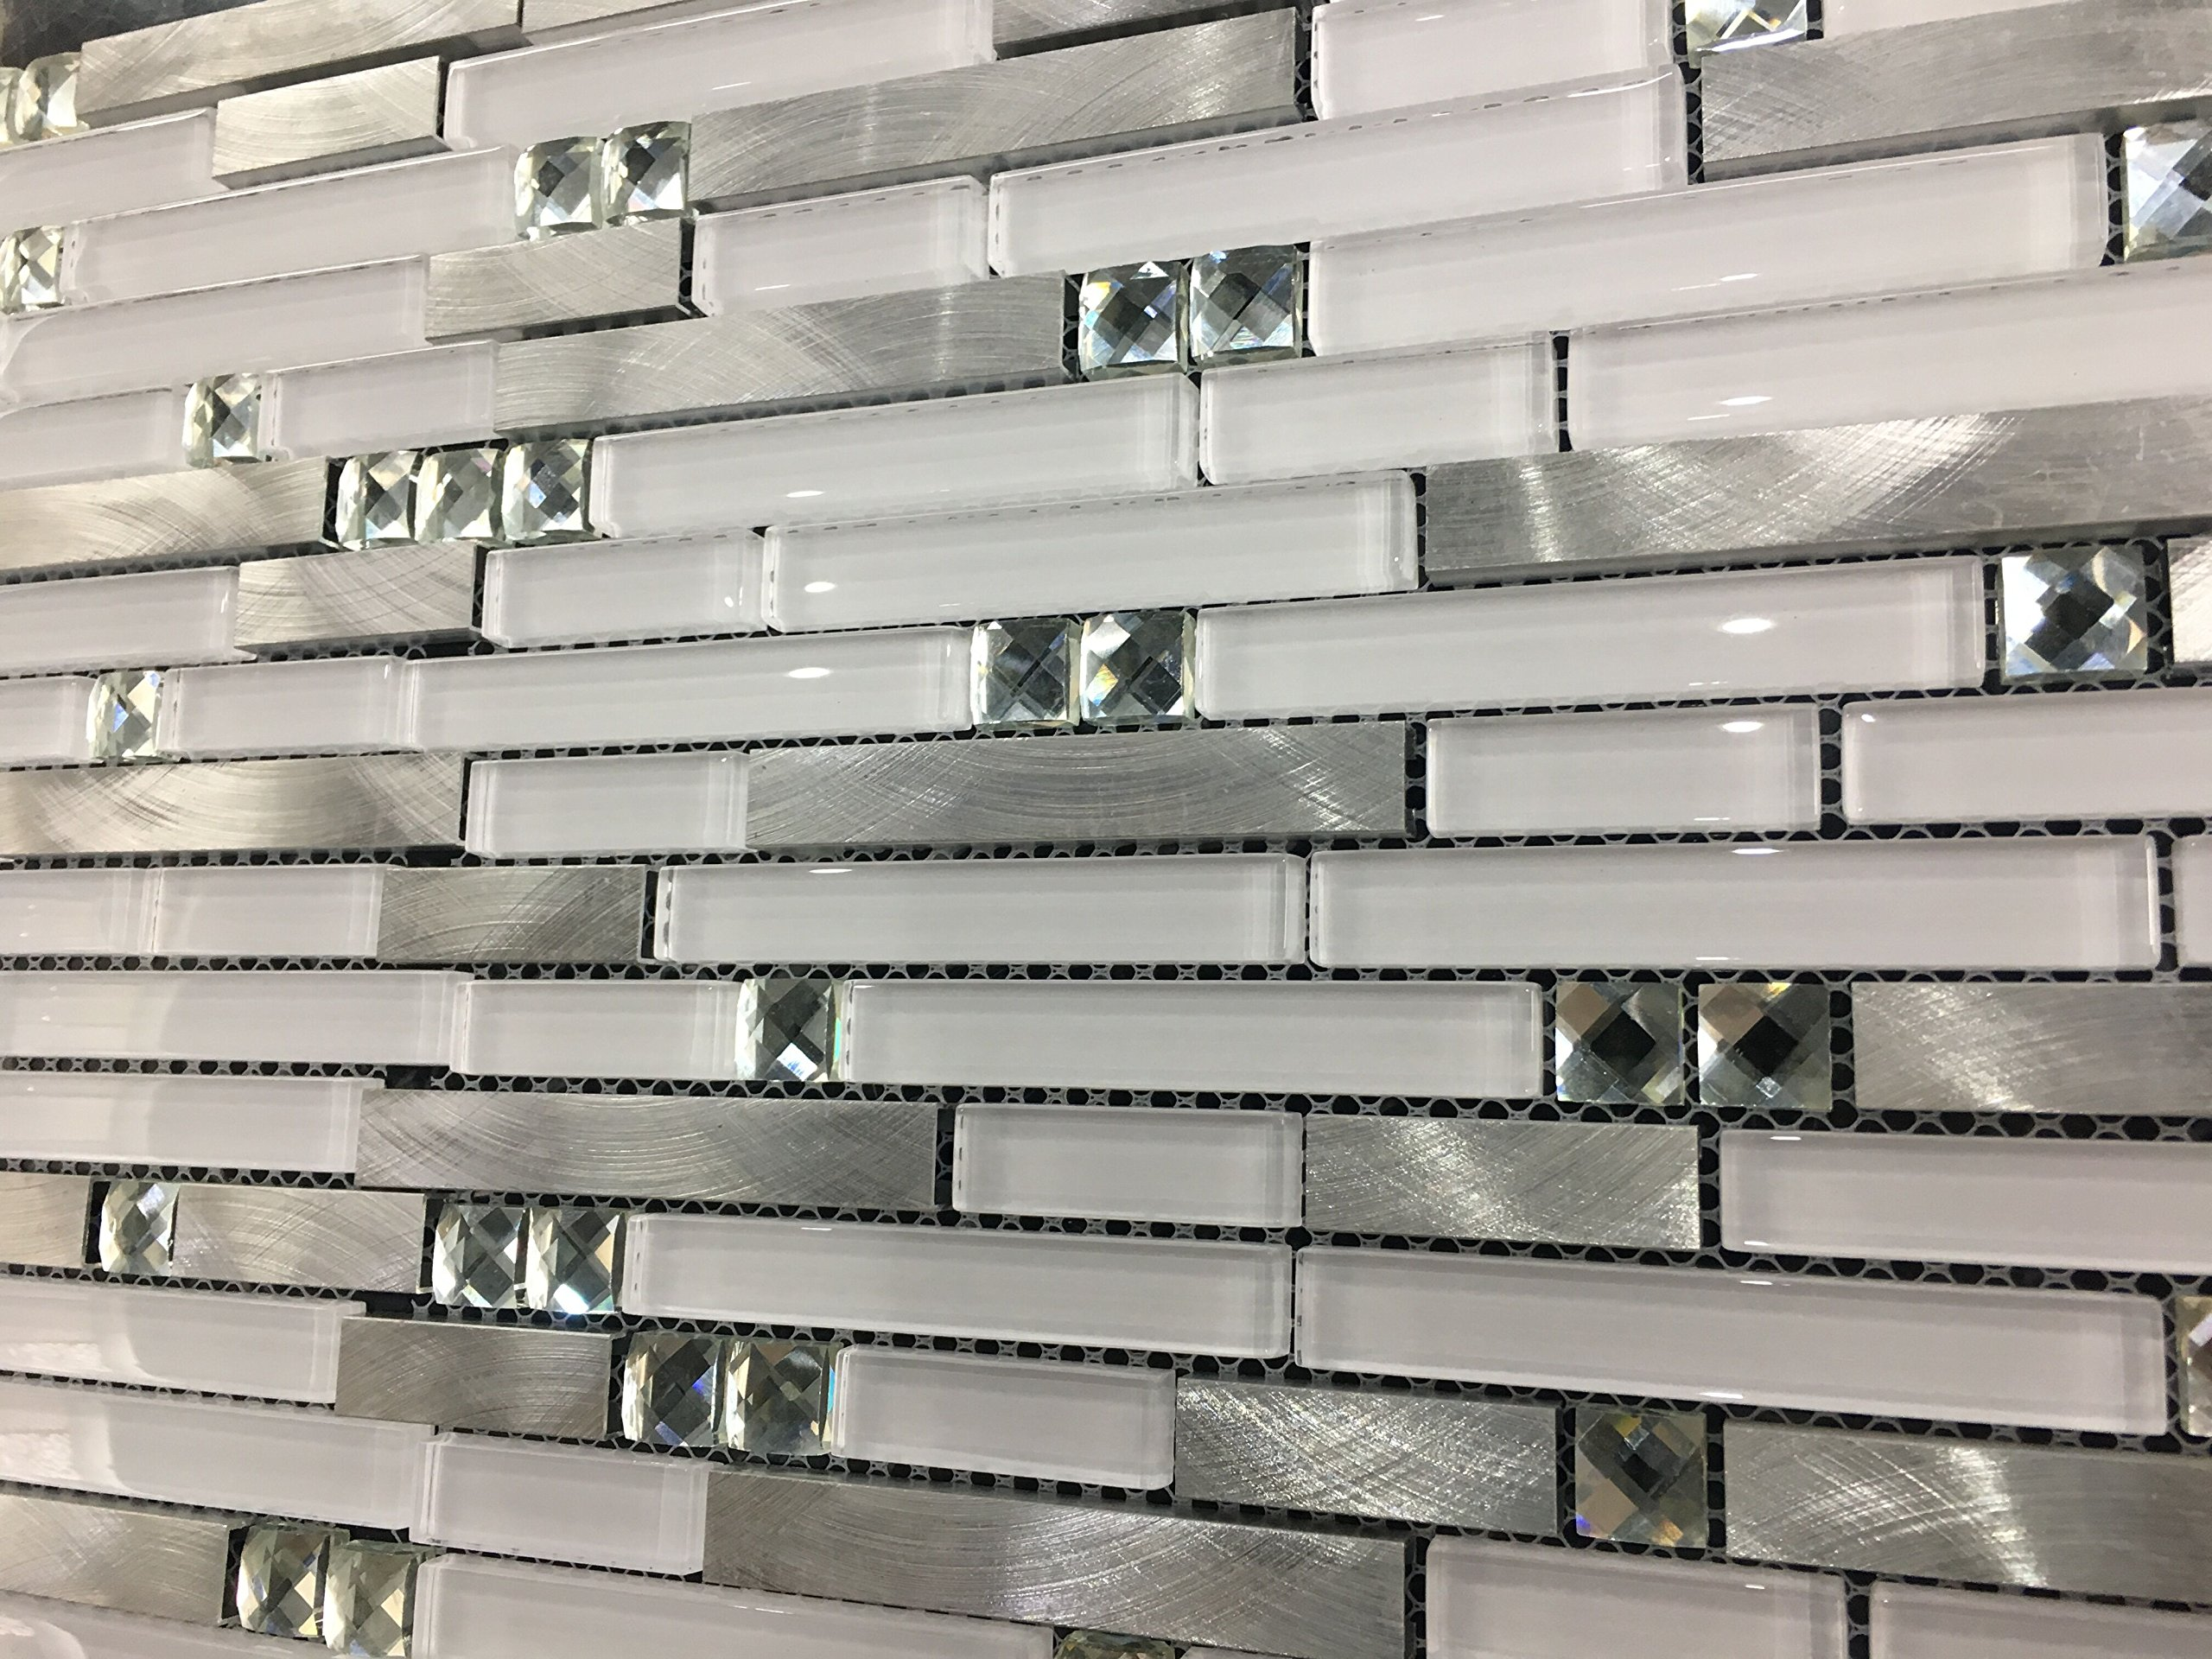 Super White Glass Aluminium Metal Strip Tiles Blends kitchen backsplash mosaic tiles,Diamond Mirror Mosaic Wall Tiles for Bathroom wall/Interior wall decoration stick,LSWG03 (11PCS 11sq.ft/pack) by LANDS GLASS METAL TILES